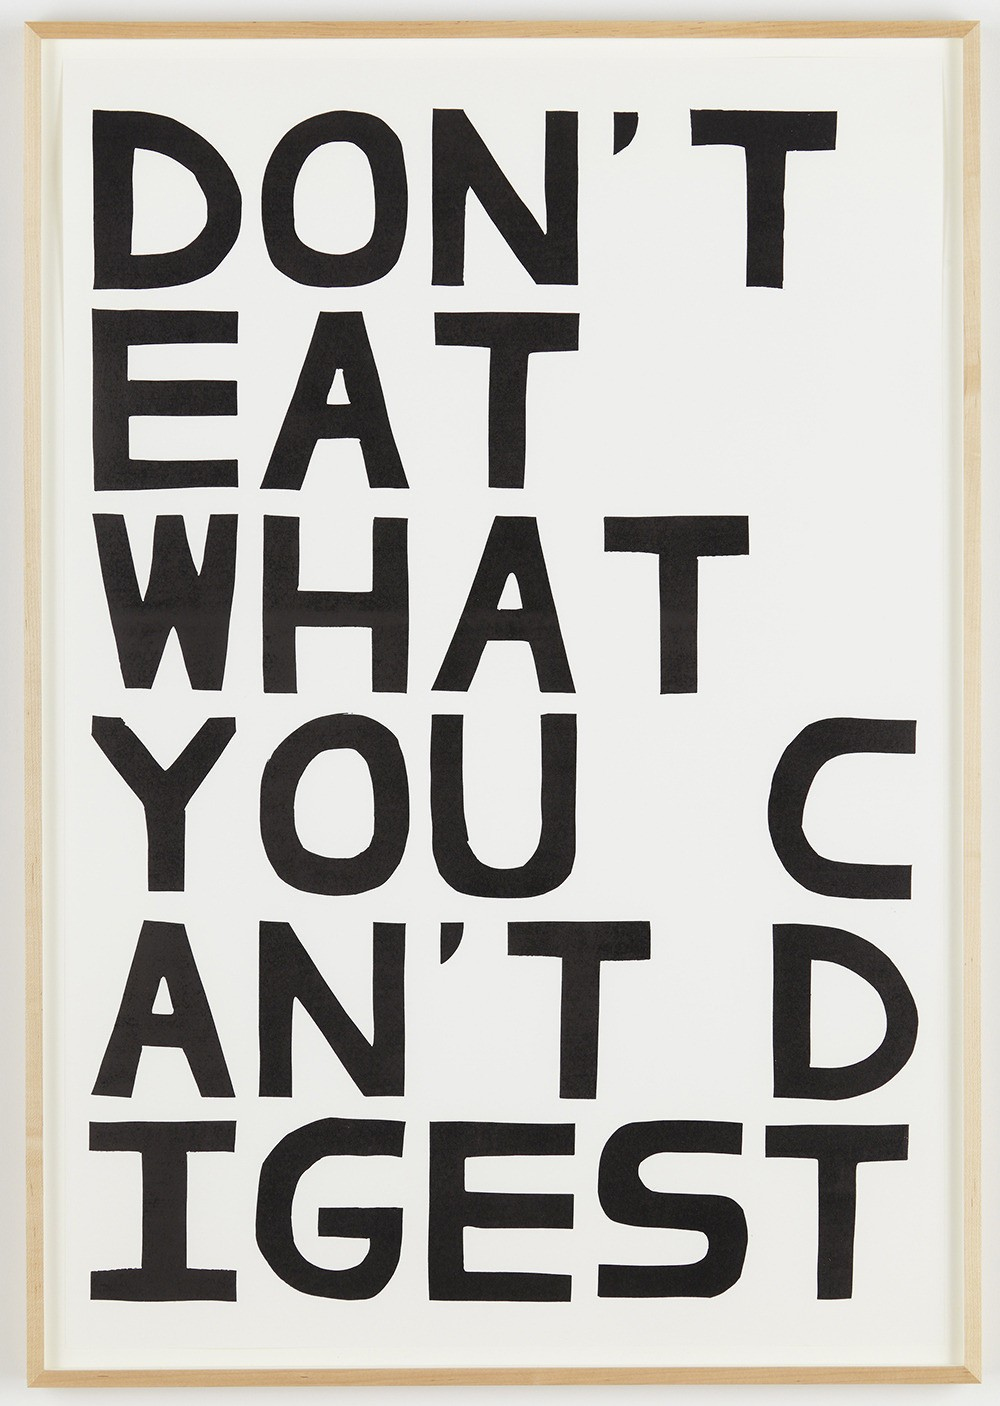 David Shrigley, Don't Eat What You Can't Digest, 2012, Unique linocut print, 41 3/8 x 28 3/8 inches, Courtesy the artist, Anton Kern Gallery, New York